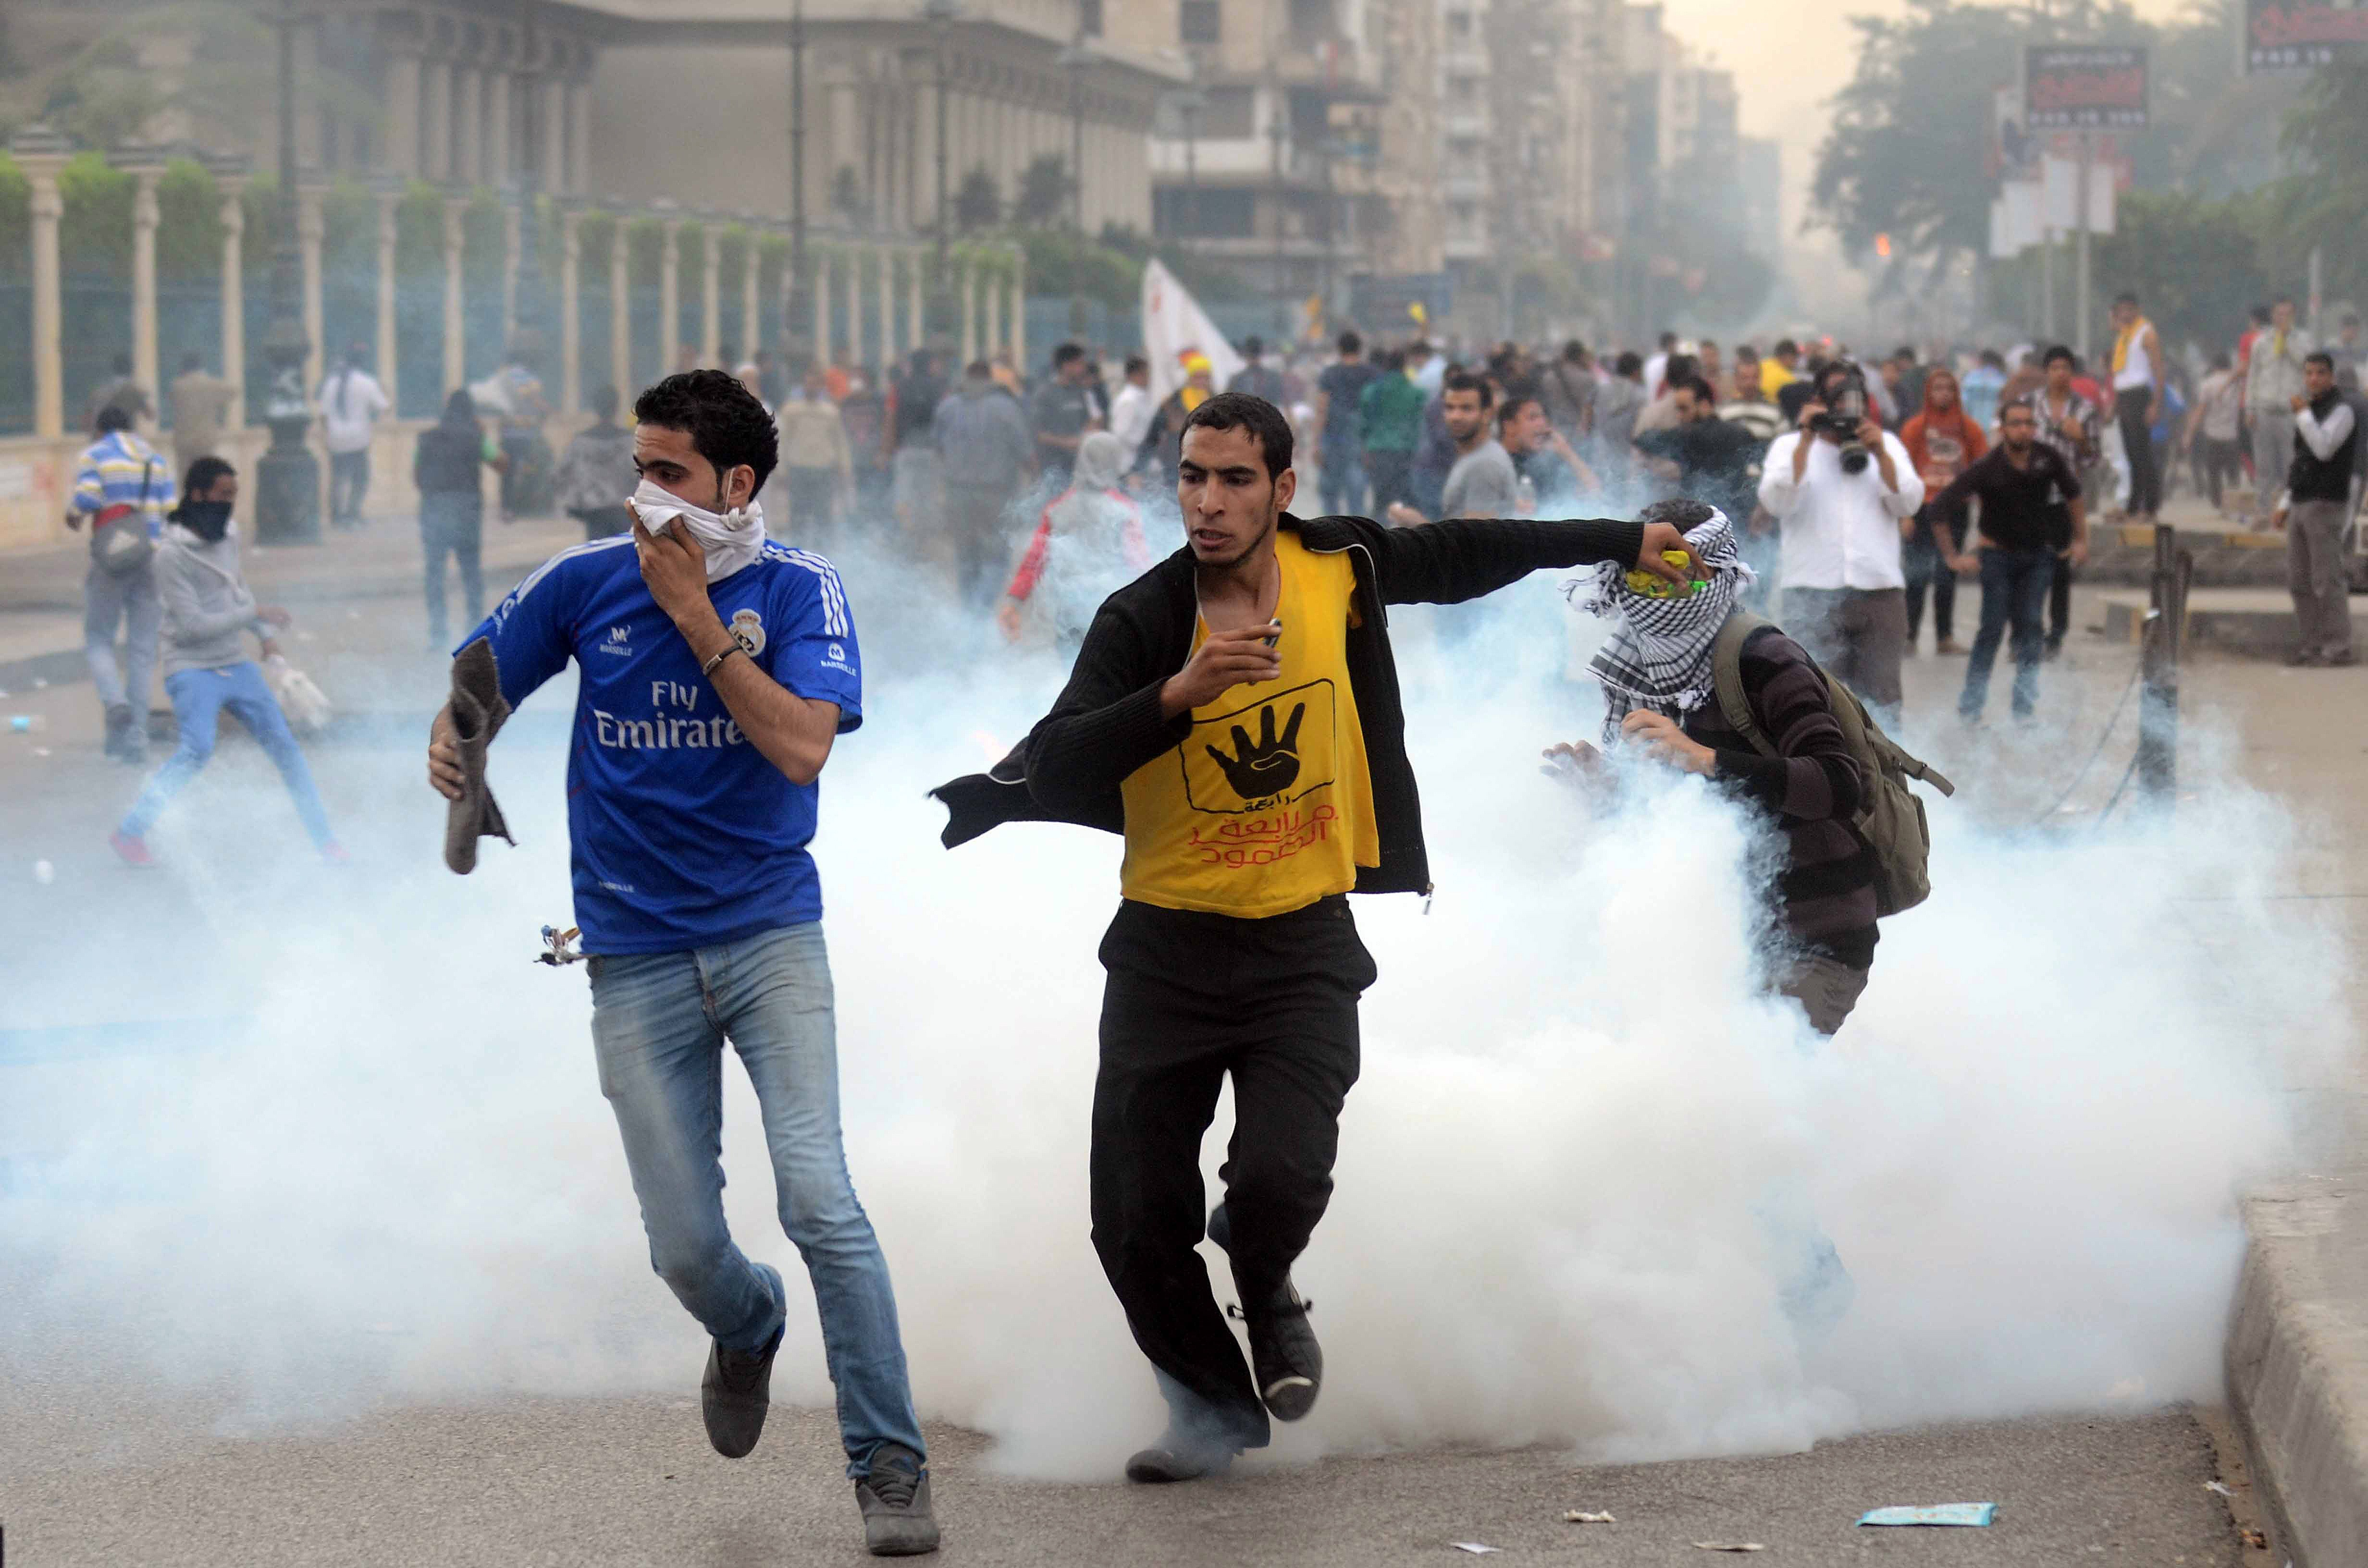 Supporters of ousted president Mohamed Morsi and the Muslim brotherhood run away from tear gas during clashes with Egyptian riot police close to Rabaa al-Adawiya square on November 22, 2013.  (AFP PHOTO/MOHAMED EL-SHAHED)